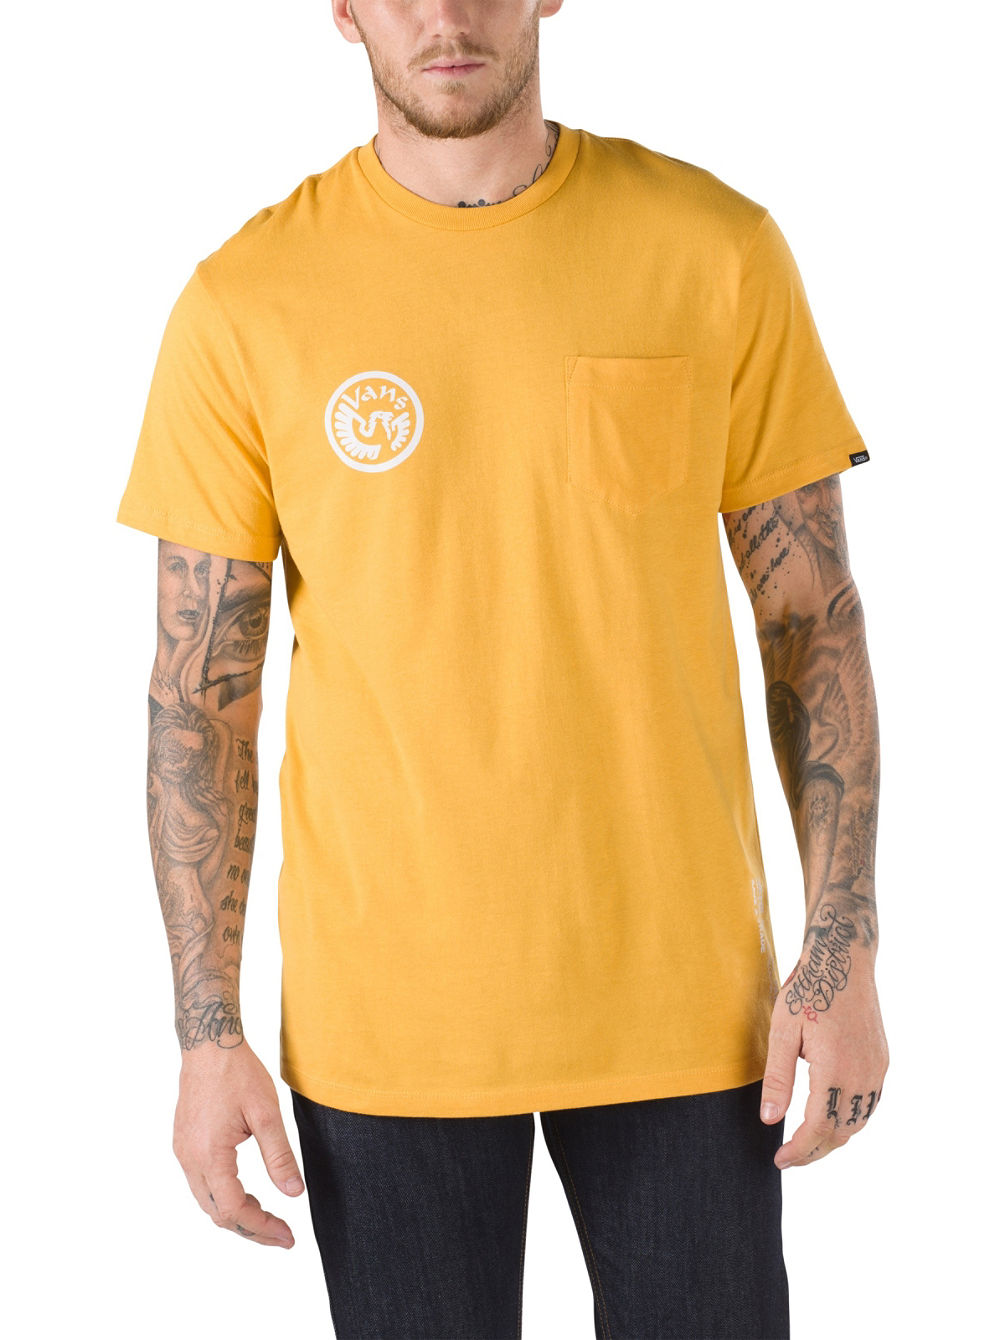 Save N' Trade Pocket T-Shirt